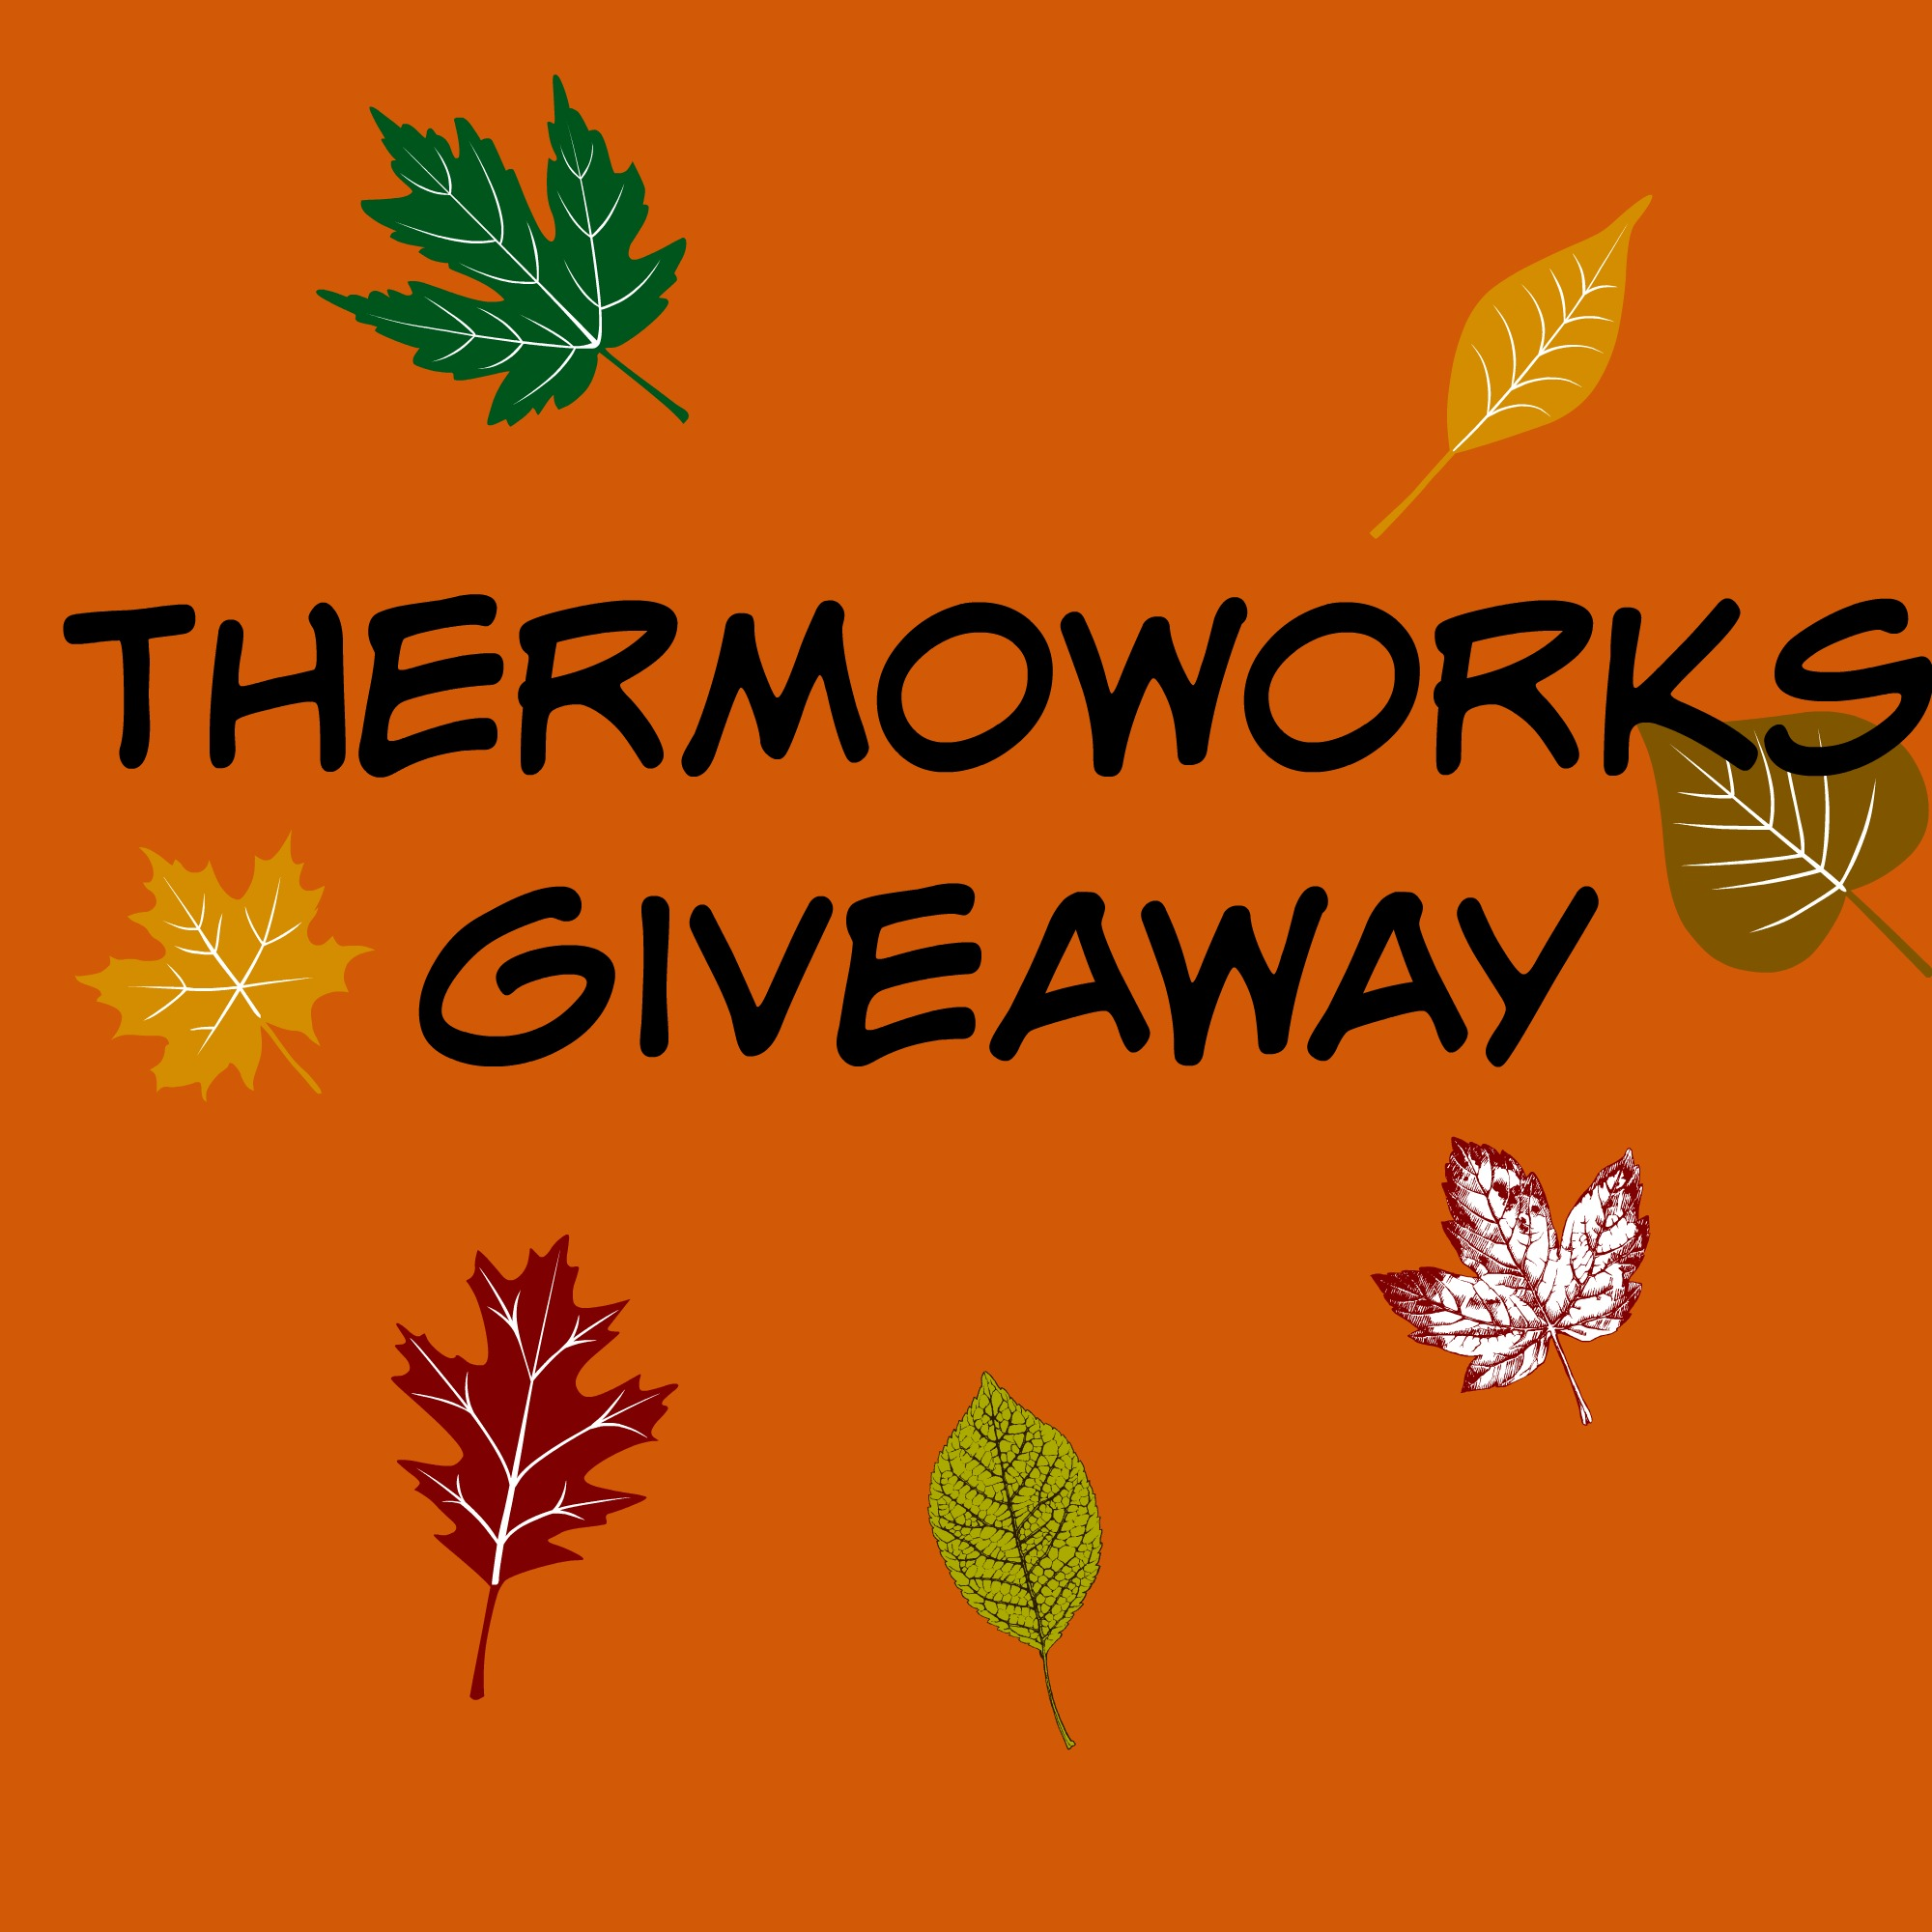 ThermoWorks Giveaway